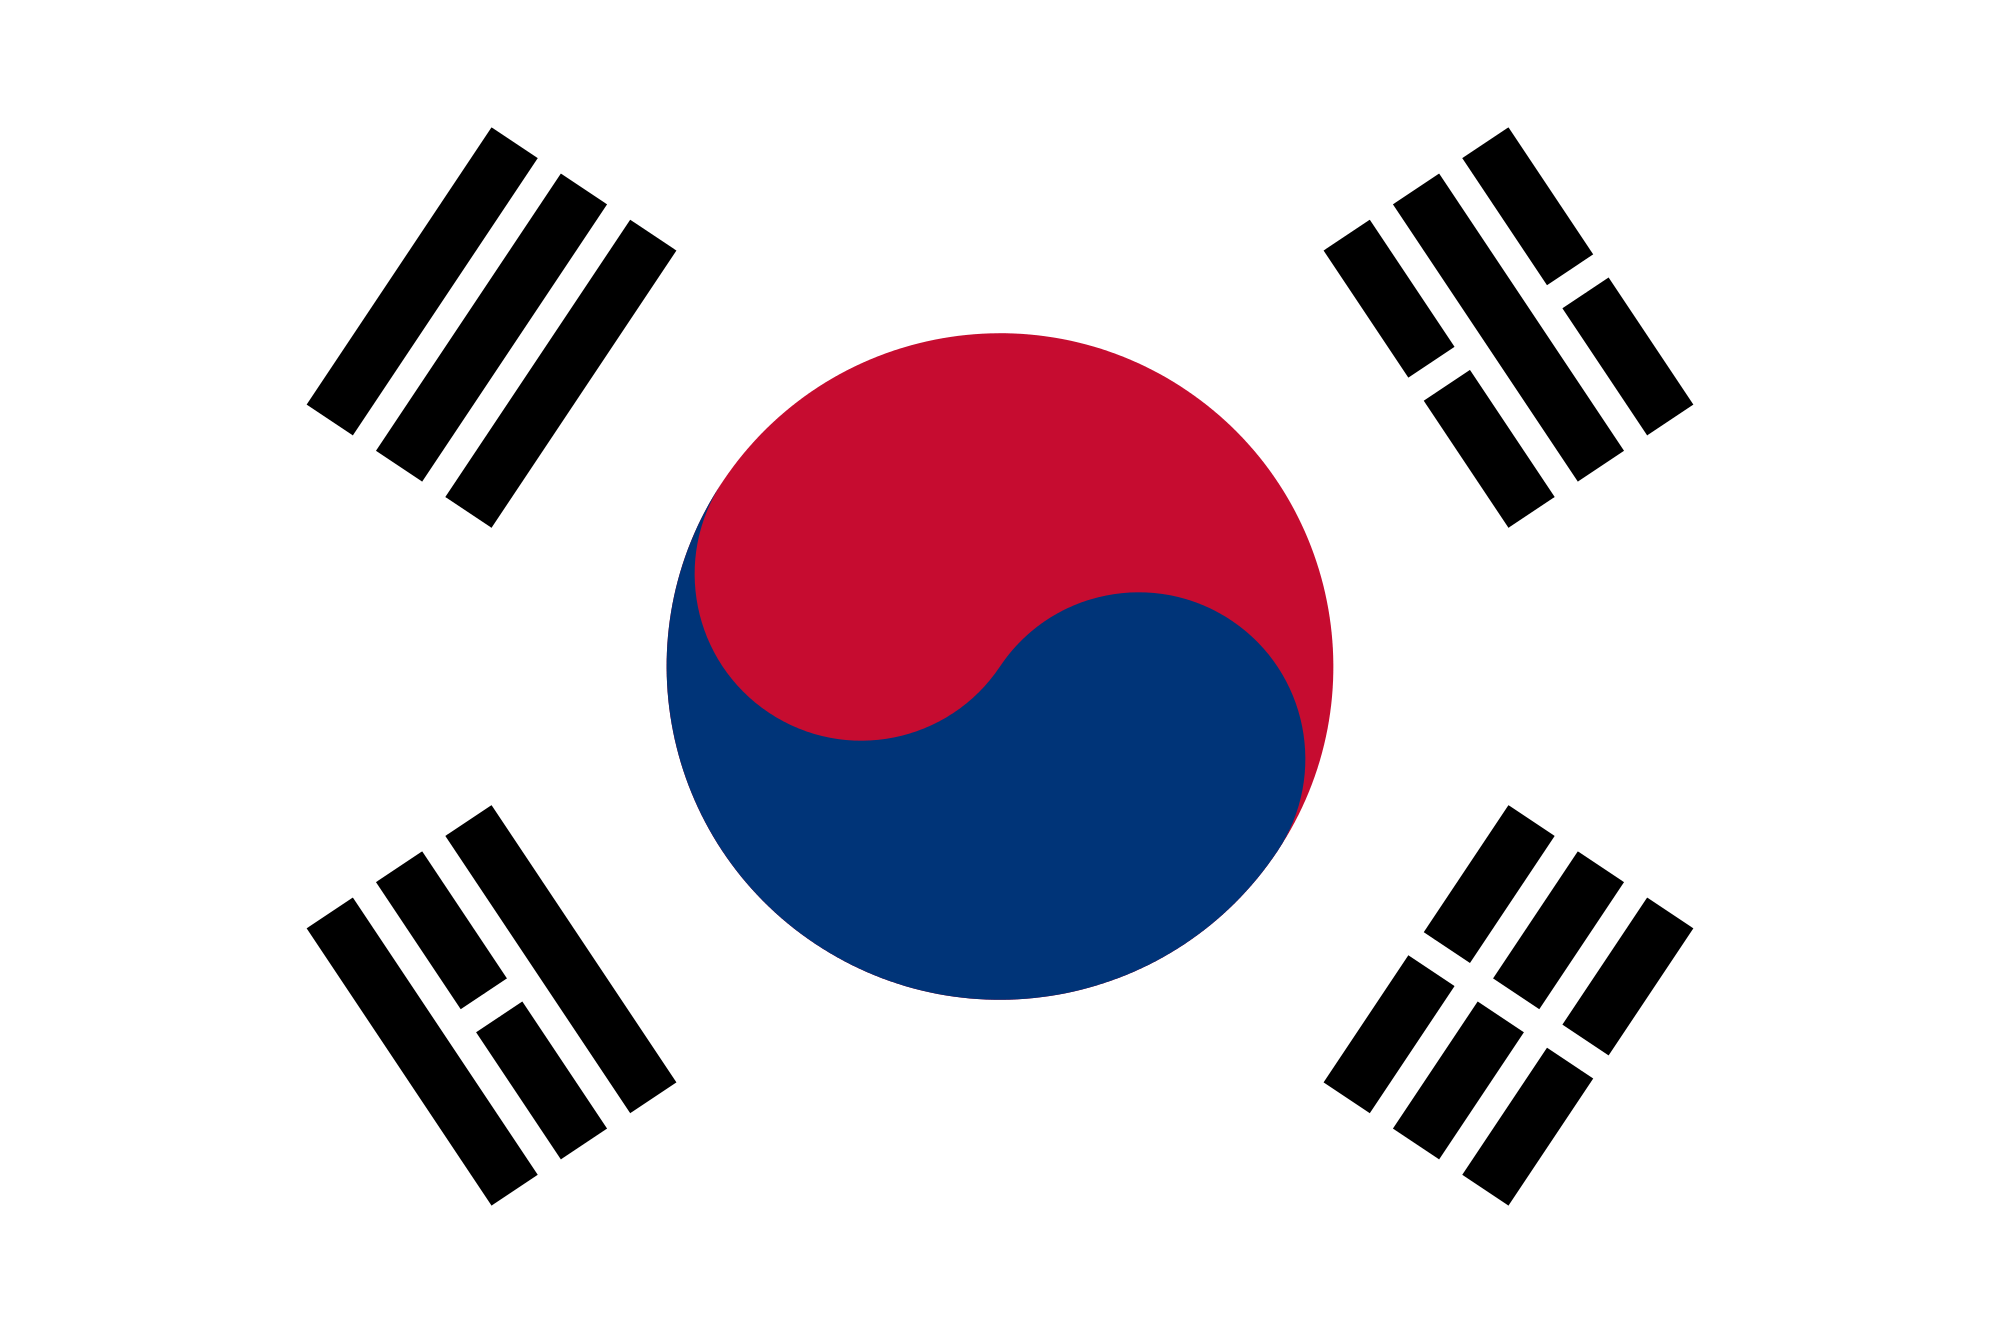 Korea, South Korea in Asia (School)